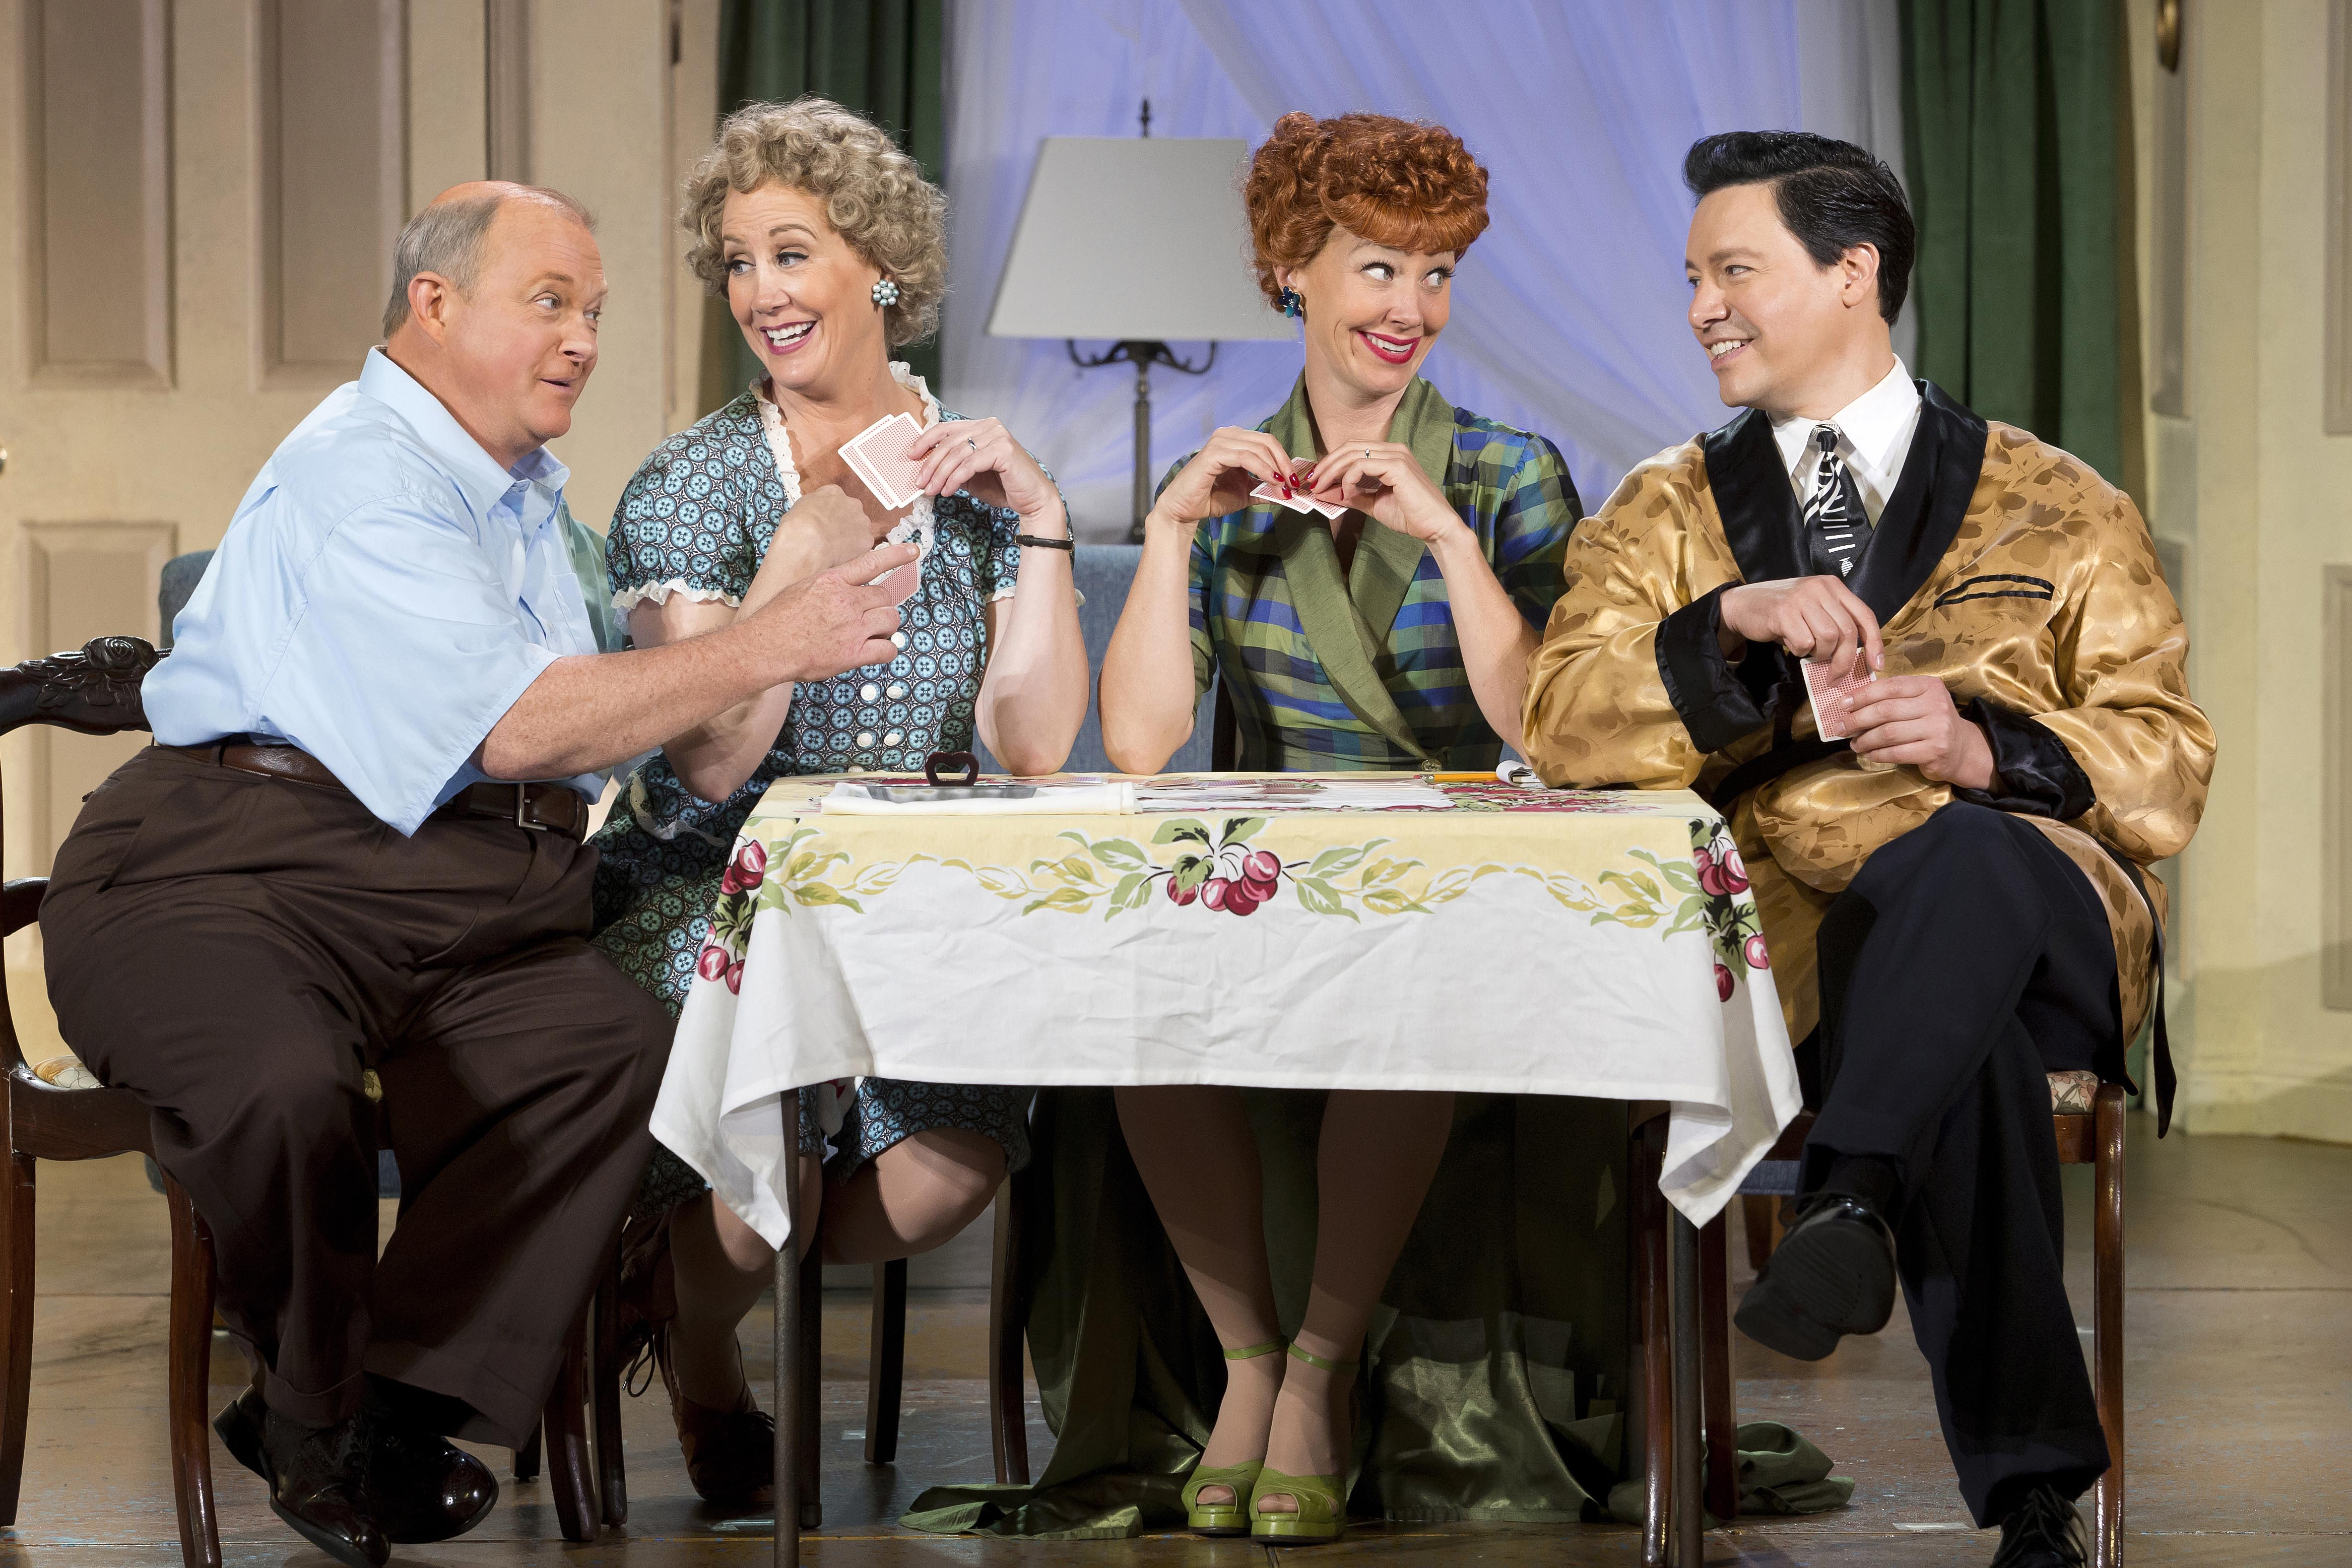 Kevin Remington (Fred), Joanna Daniels (Ethel), Sirena Irwin (Lucy), and Bill Mendieta (Ricky) in I LOVE LUCY® LIVE ON STAGE copy